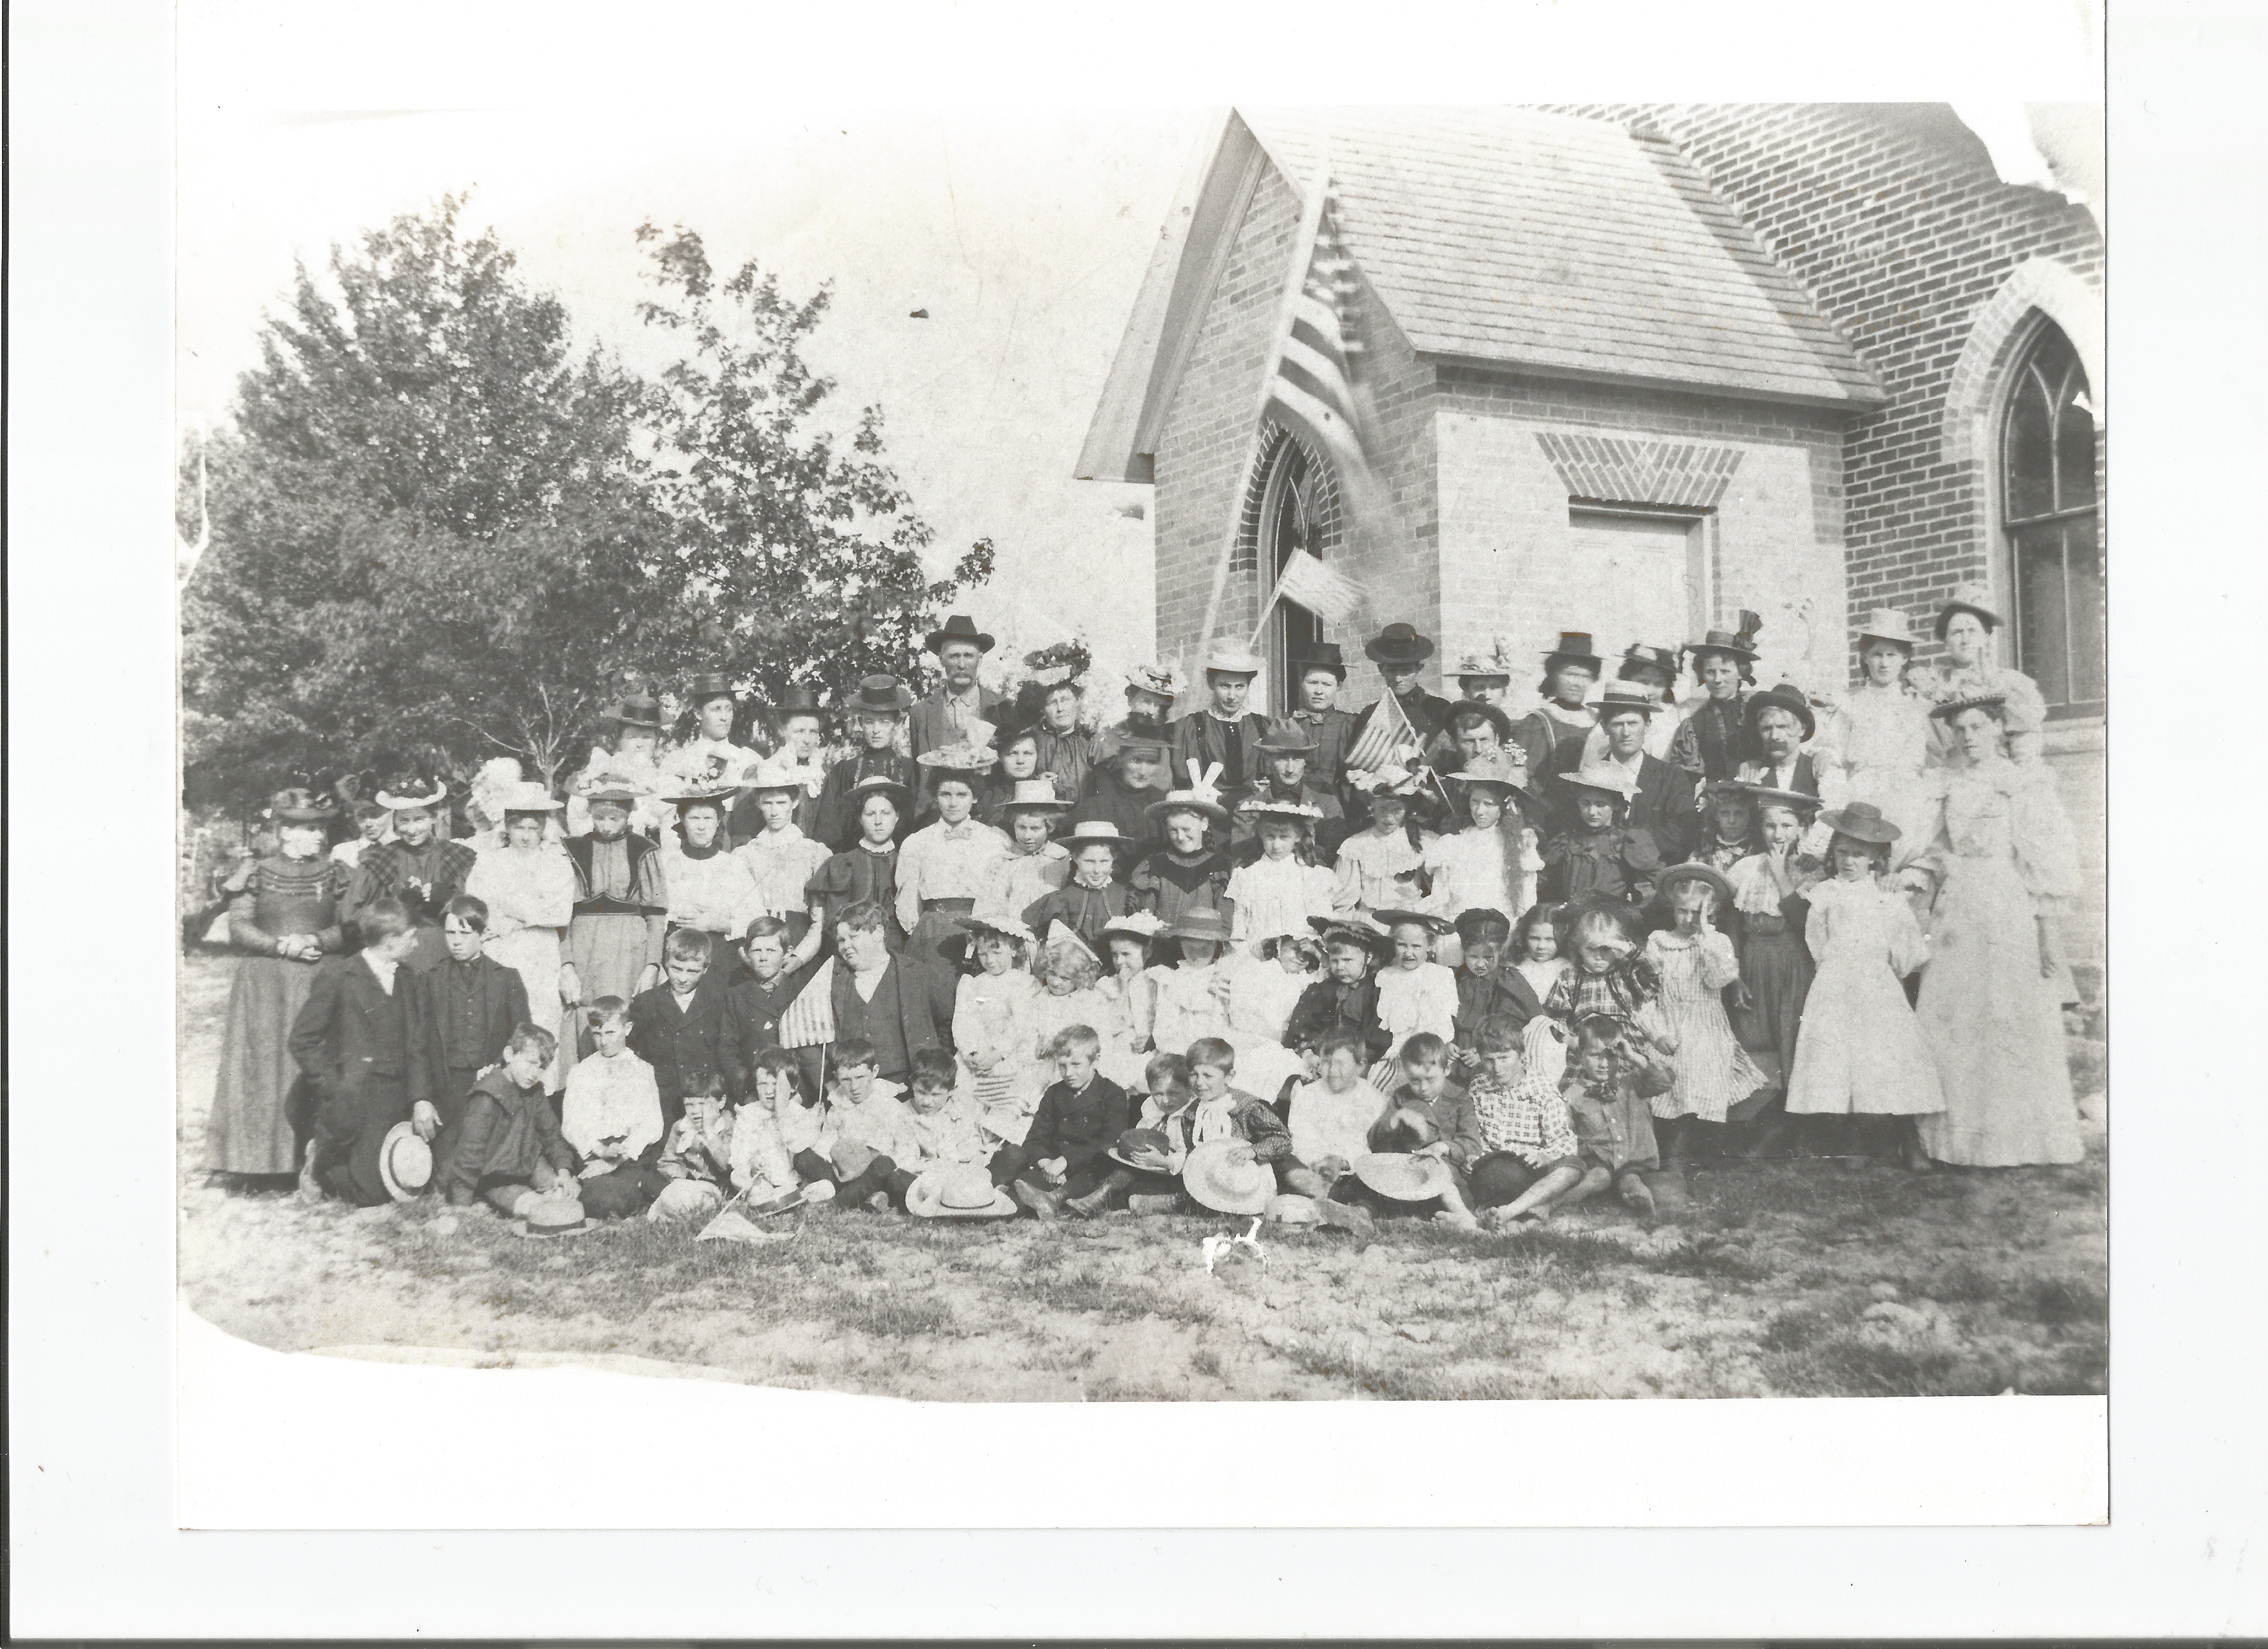 Omard Church congregation - c. early 1900s